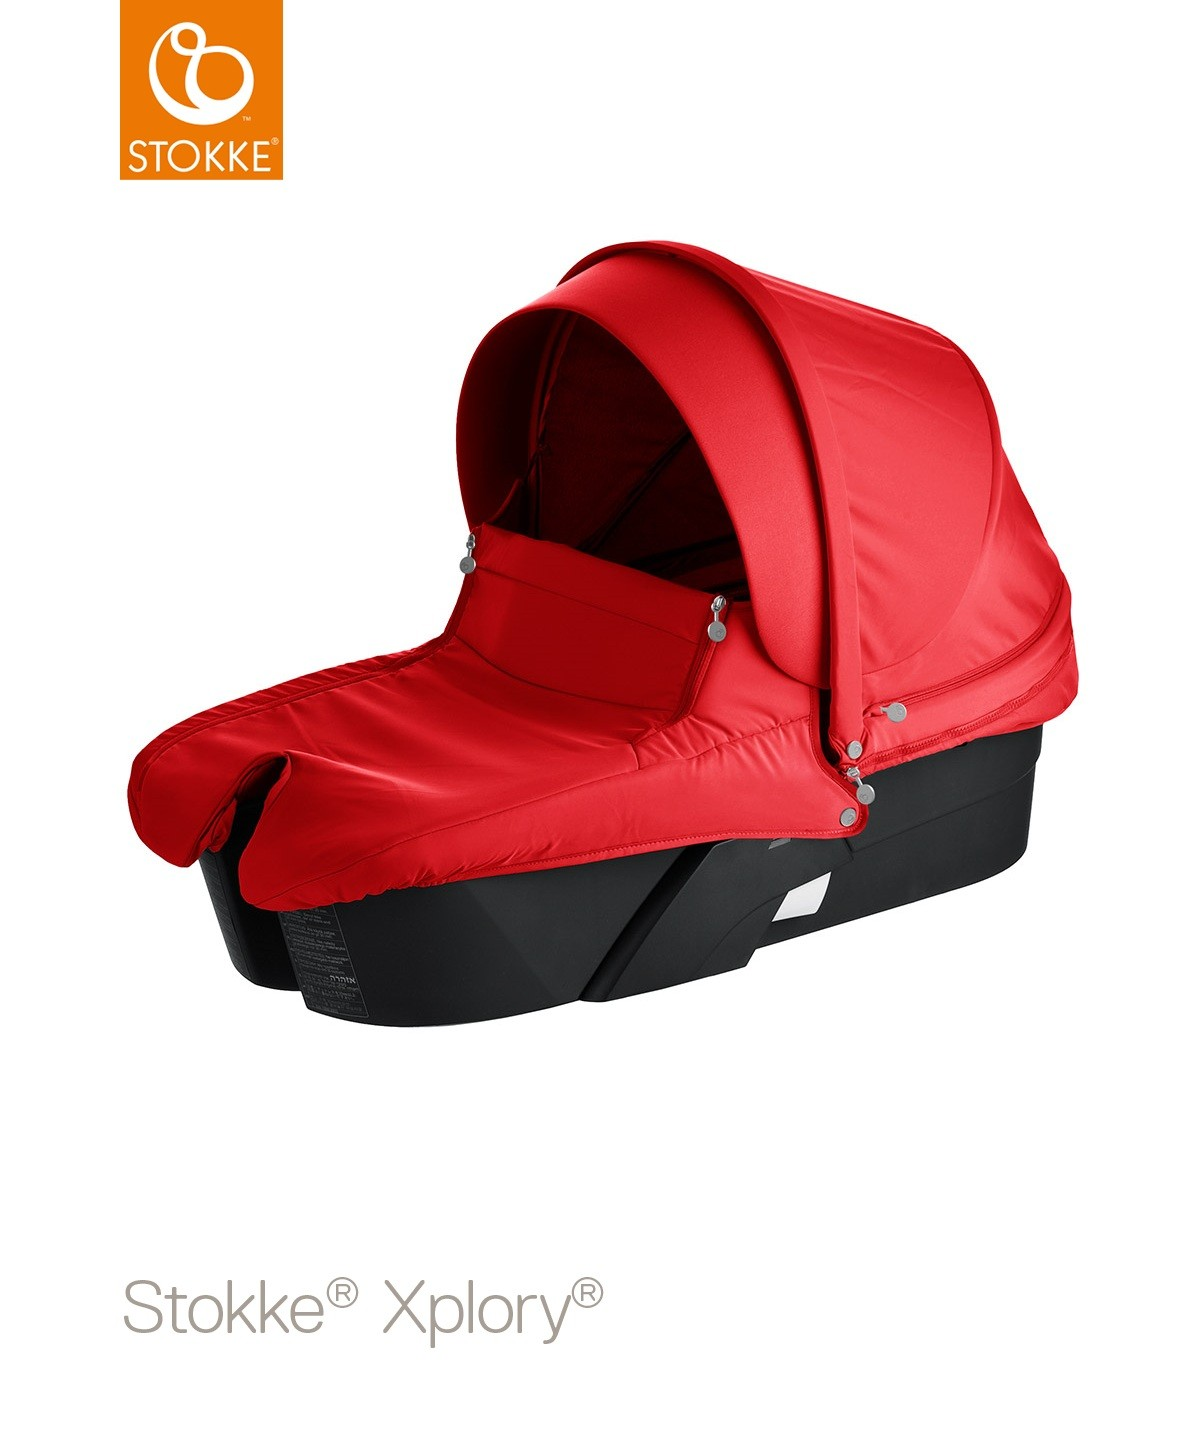 Люлька Stokke Xplory All Black, цвет: красныйStokke<br>Люлька Stokke Xplory All Black, цвет: красный<br>